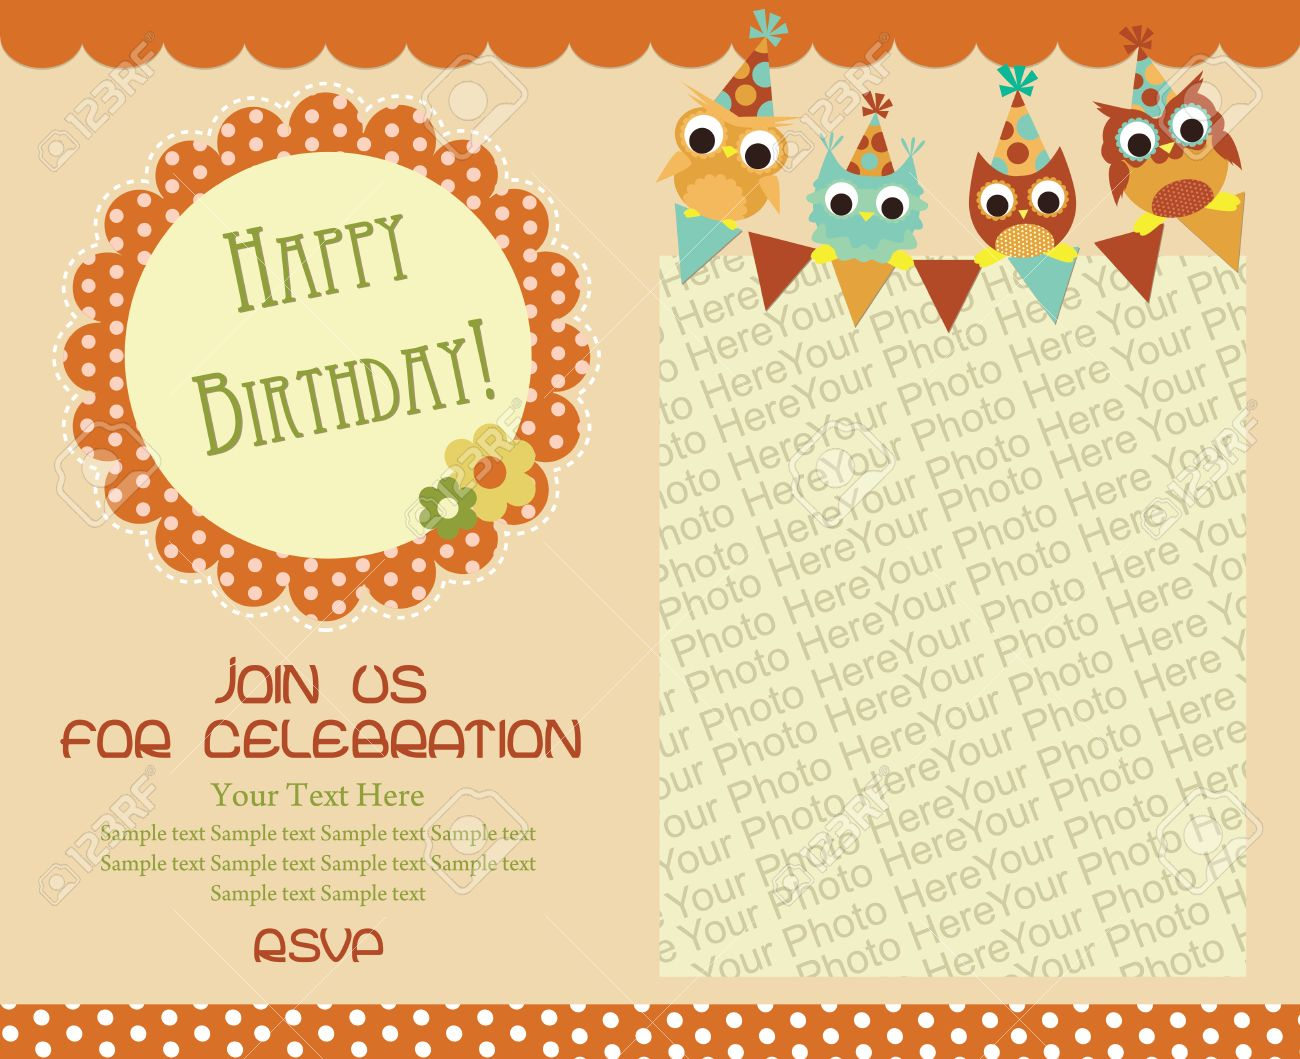 Happy birthday invitation card design vector illustration royalty happy birthday invitation card design vector illustration stock vector 26905973 filmwisefo Gallery